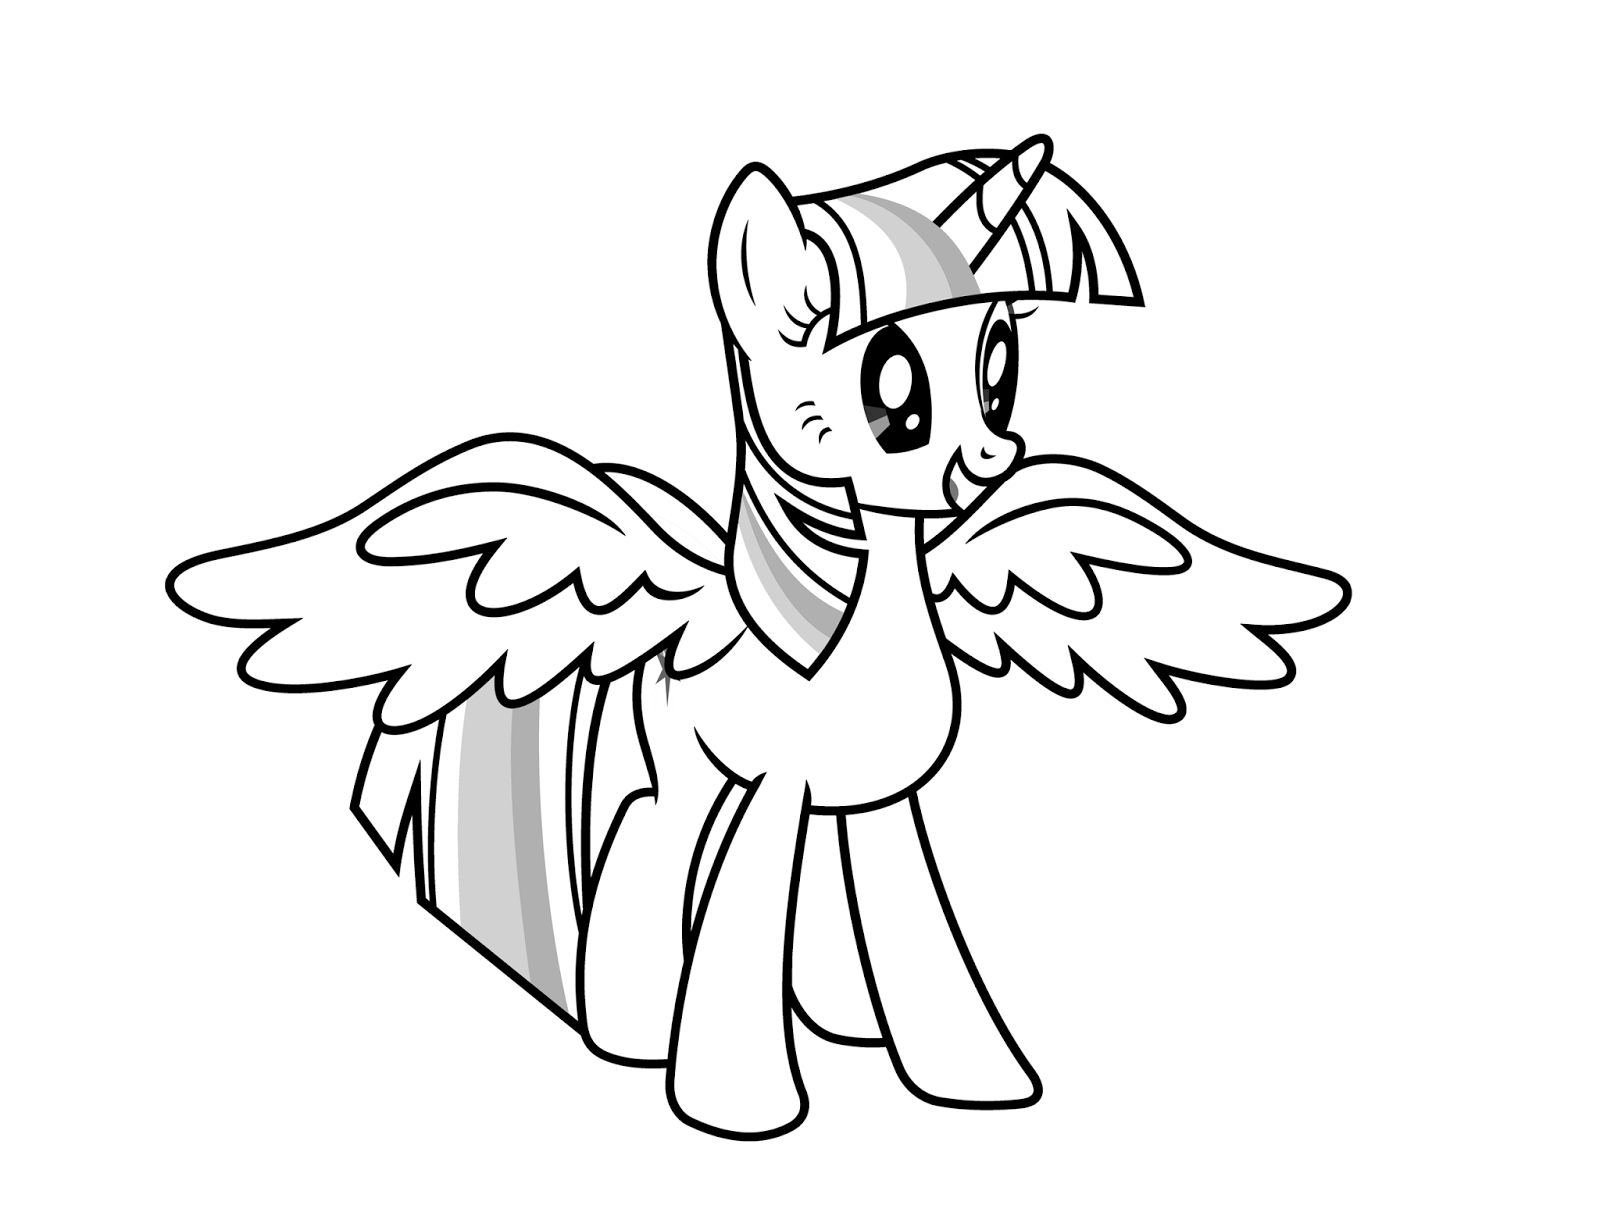 twilight sparkle colouring pages twilight sparkle coloring page coloring pages for kids colouring sparkle twilight pages